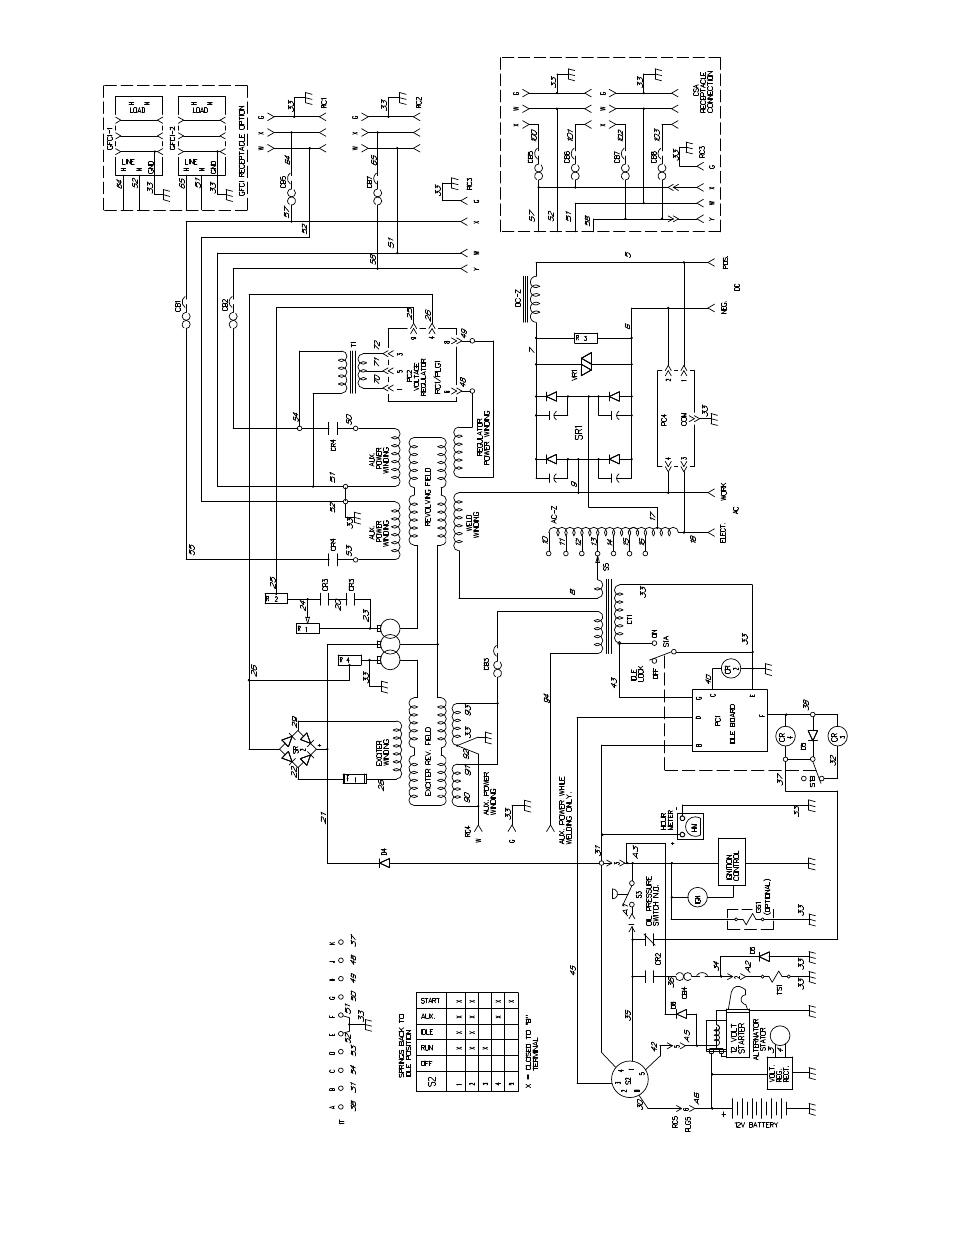 Miller legend wiring diagram free download wiring diagram xwiaw rh xwiaw us